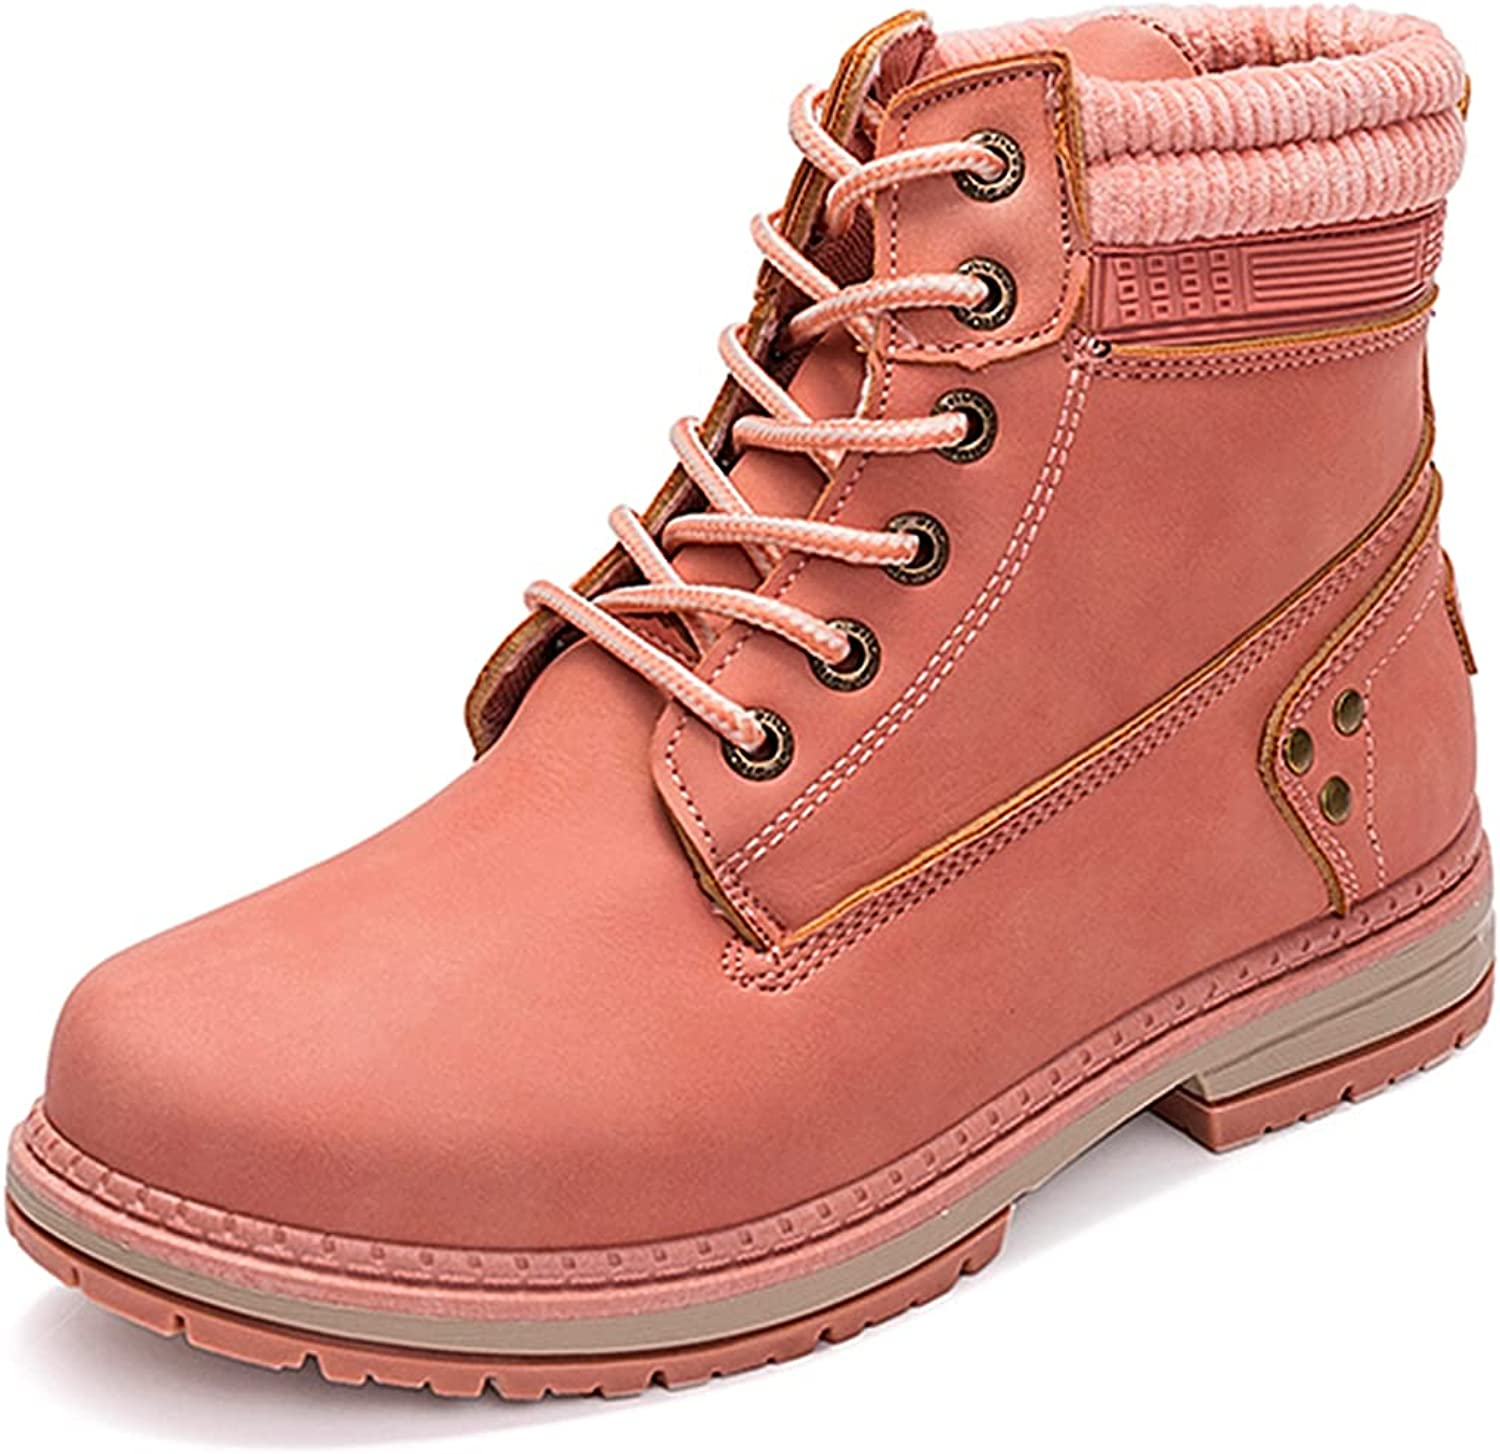 Super sale Limited Special Price period limited Women's thick heel waterproof fashion wear-resistan boots Martin